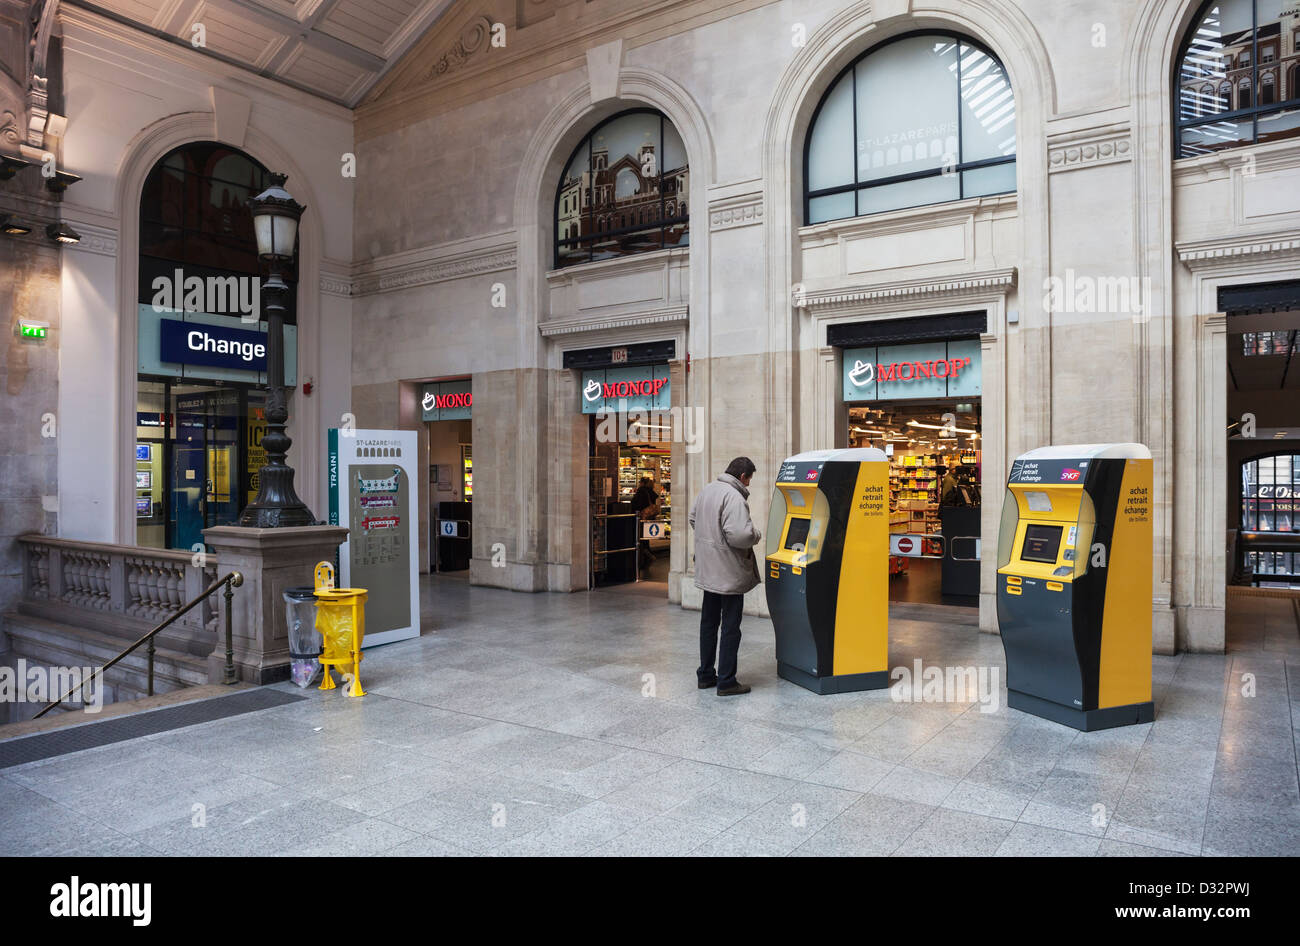 Gare st lazare railway station in paris with ticket machines